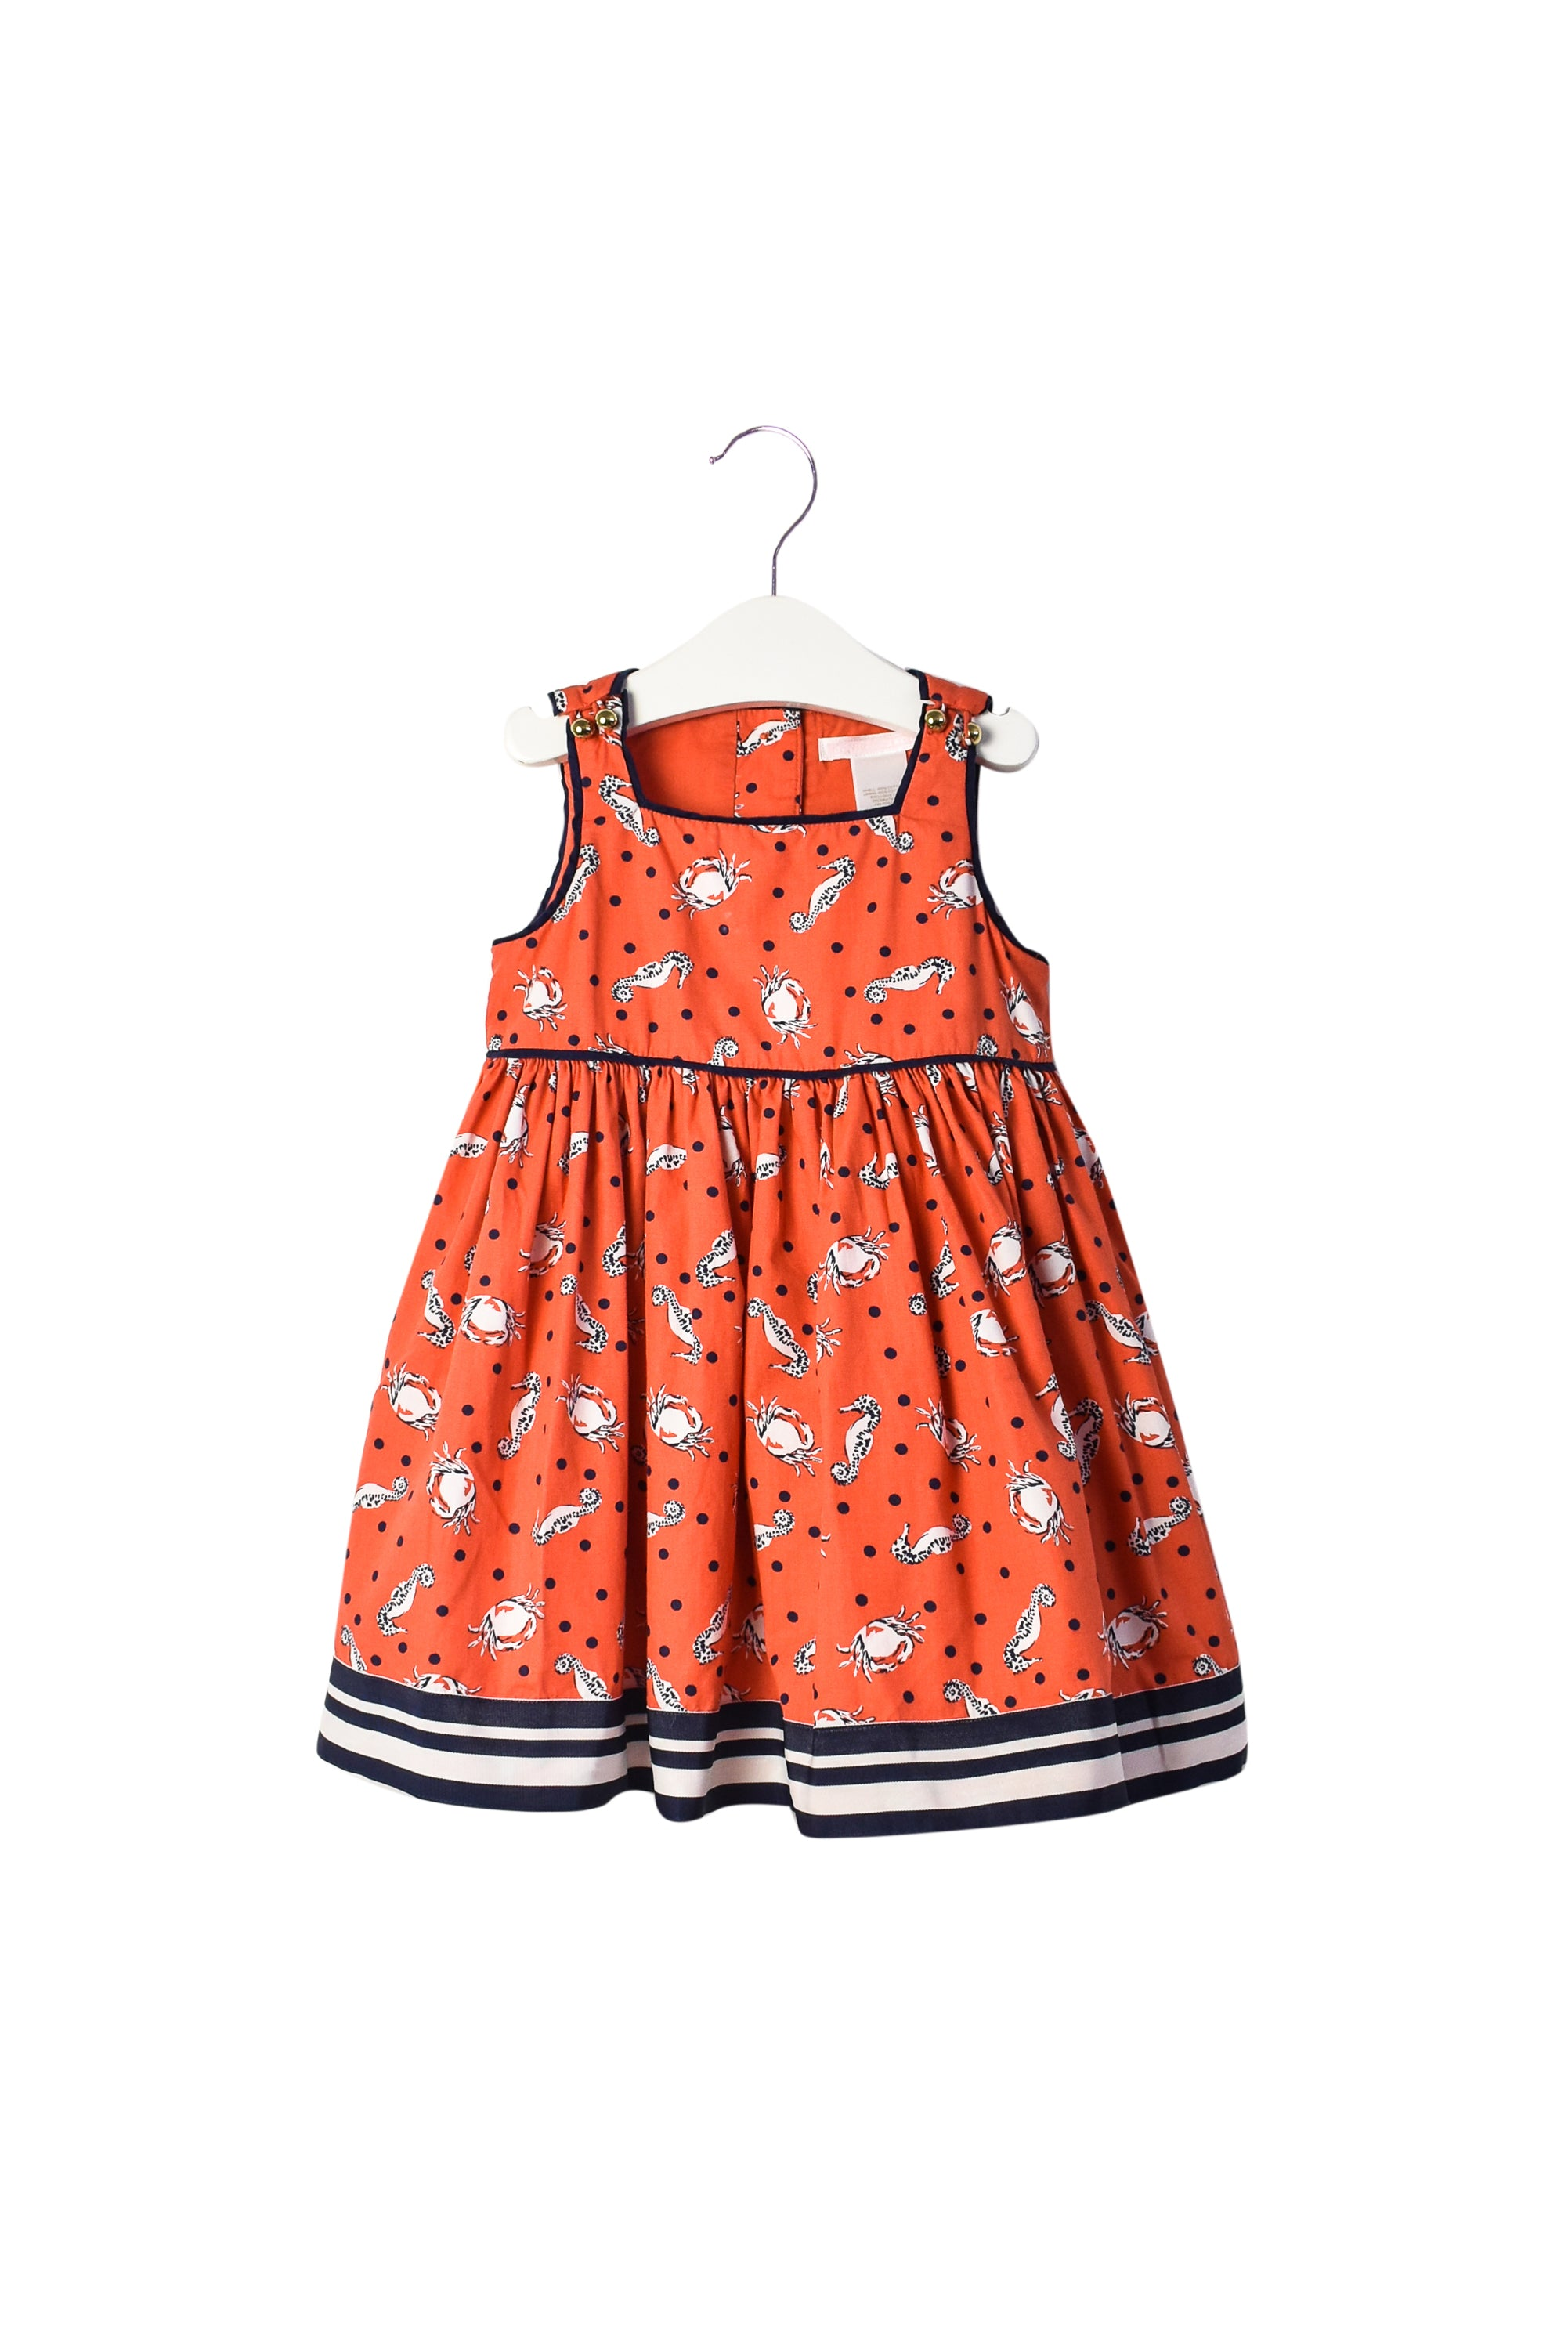 10007224 Janie & Jack Baby~ Dress and Bloomer 12-18M at Retykle